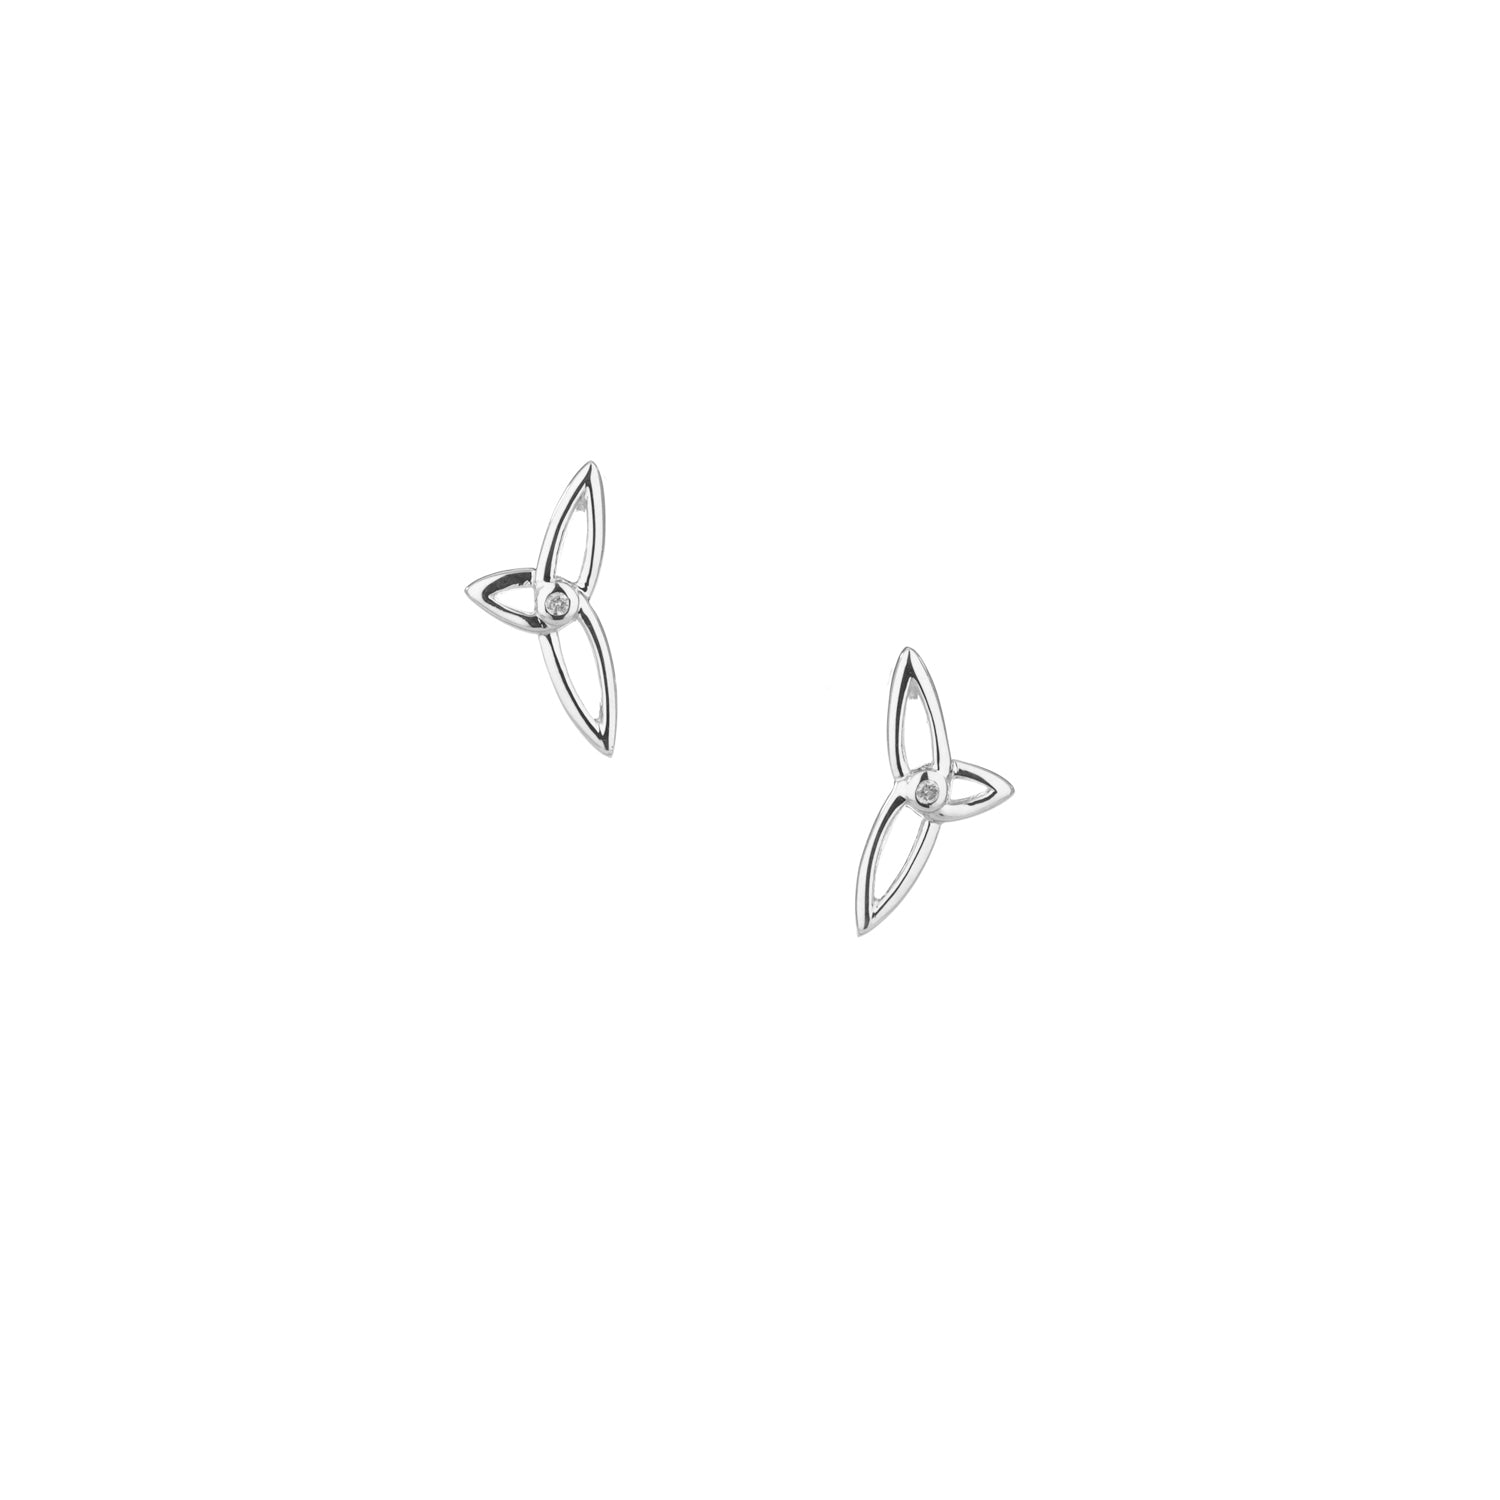 Earrings Diamond (1.3mm) Asymmetrical Trinity Post Earrings from welch and company jewelers near syracuse ny